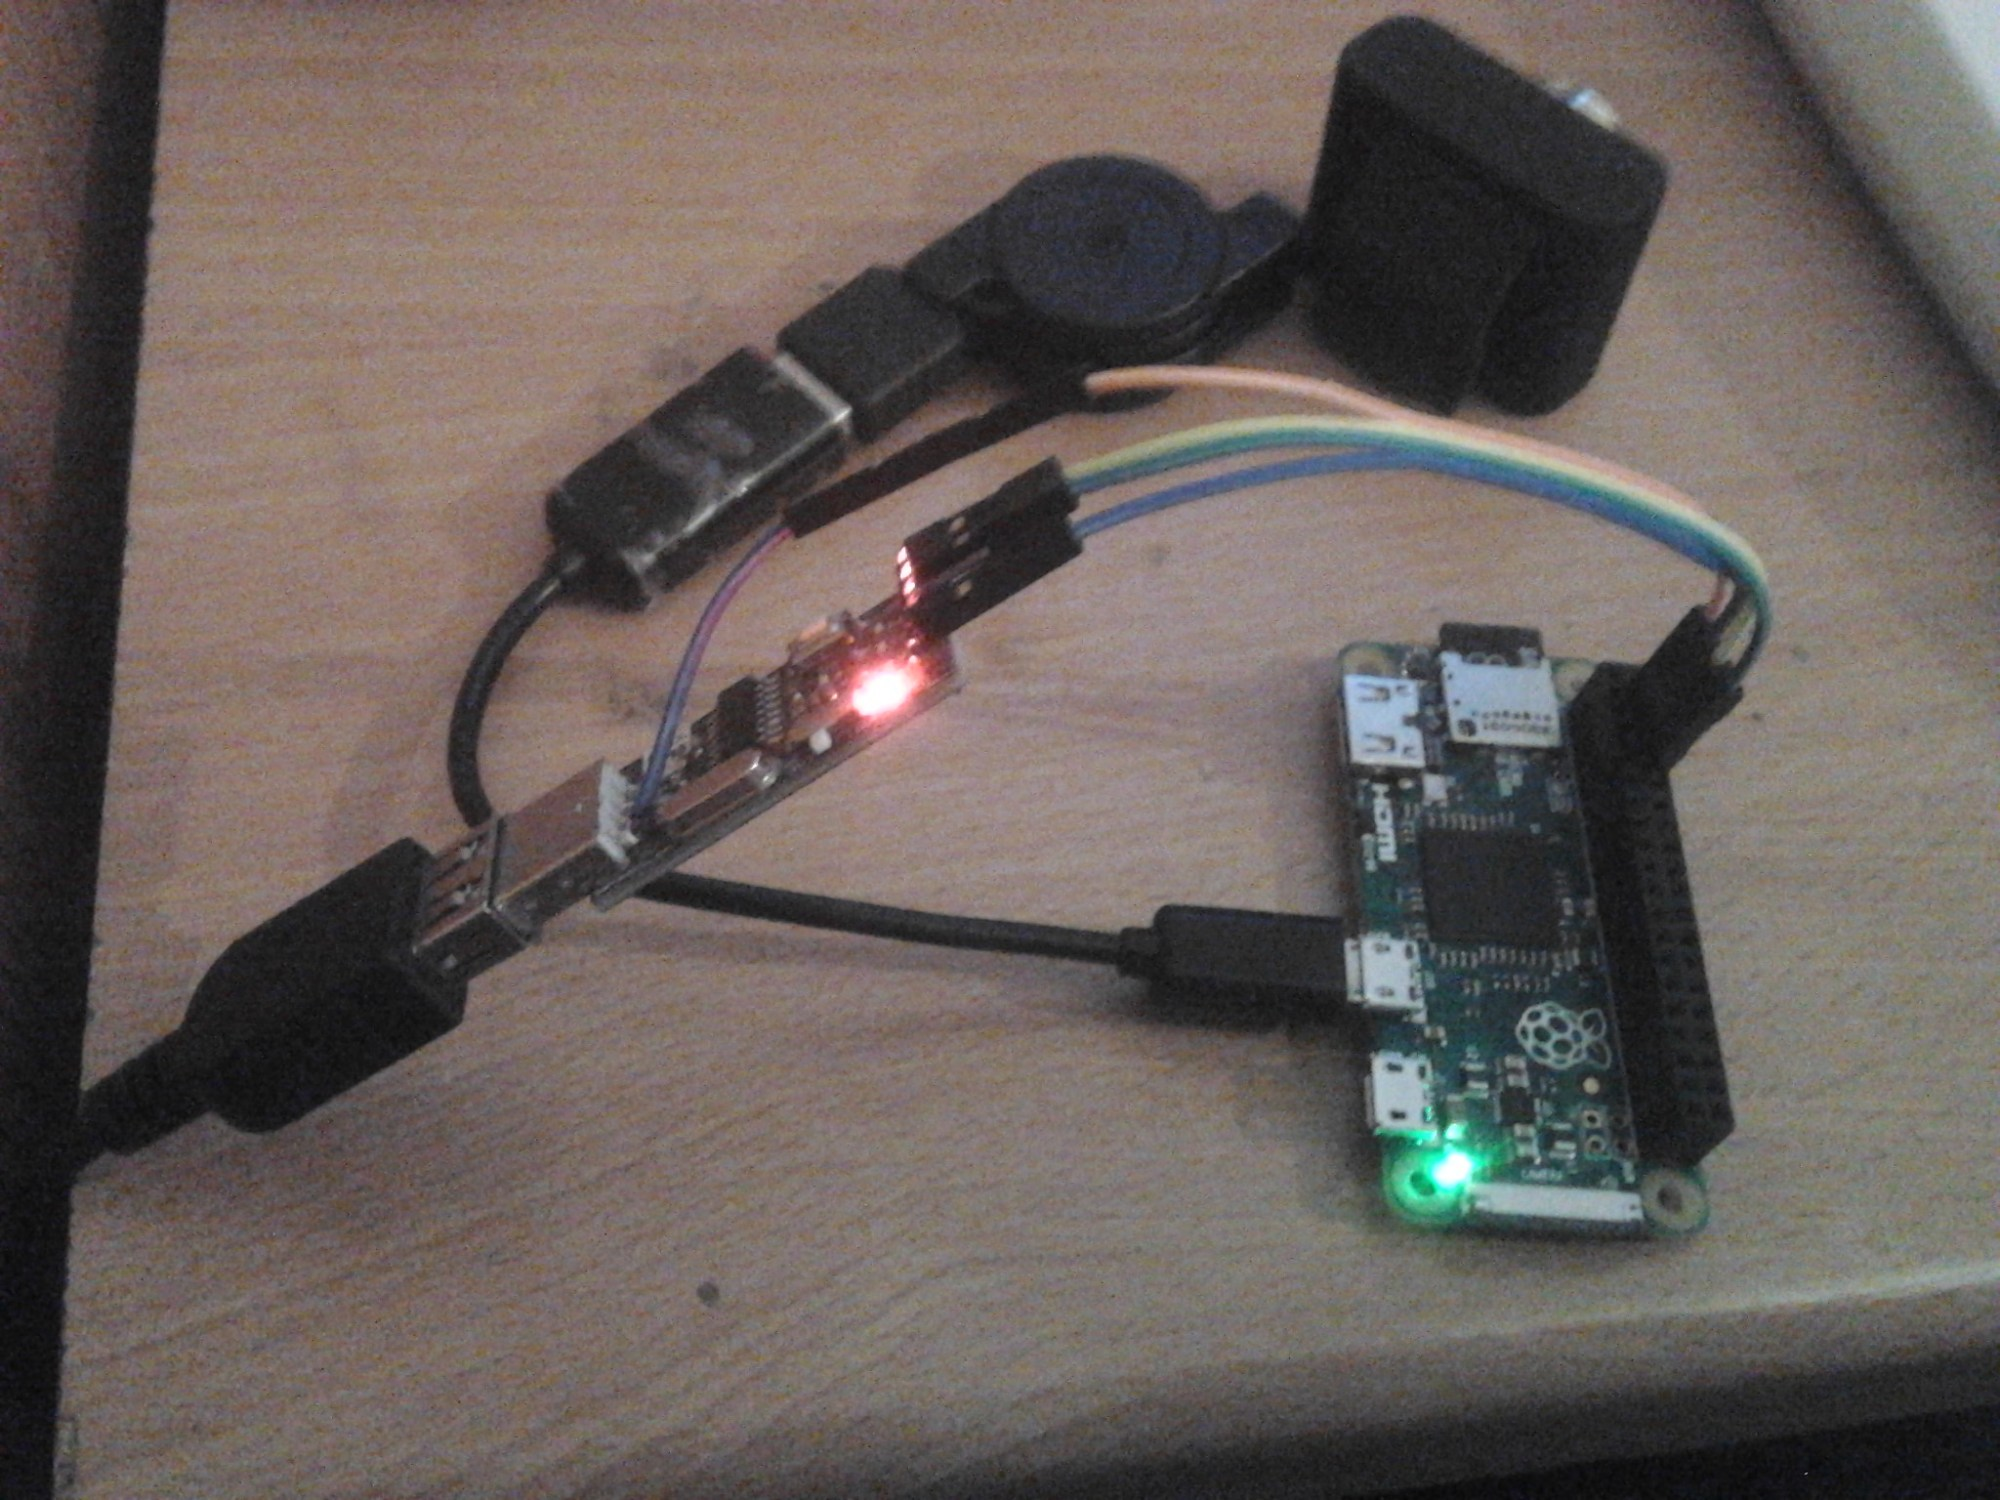 hight resolution of in that thread you can also see the three port usb hub with ethernet microb connector from pimoroni